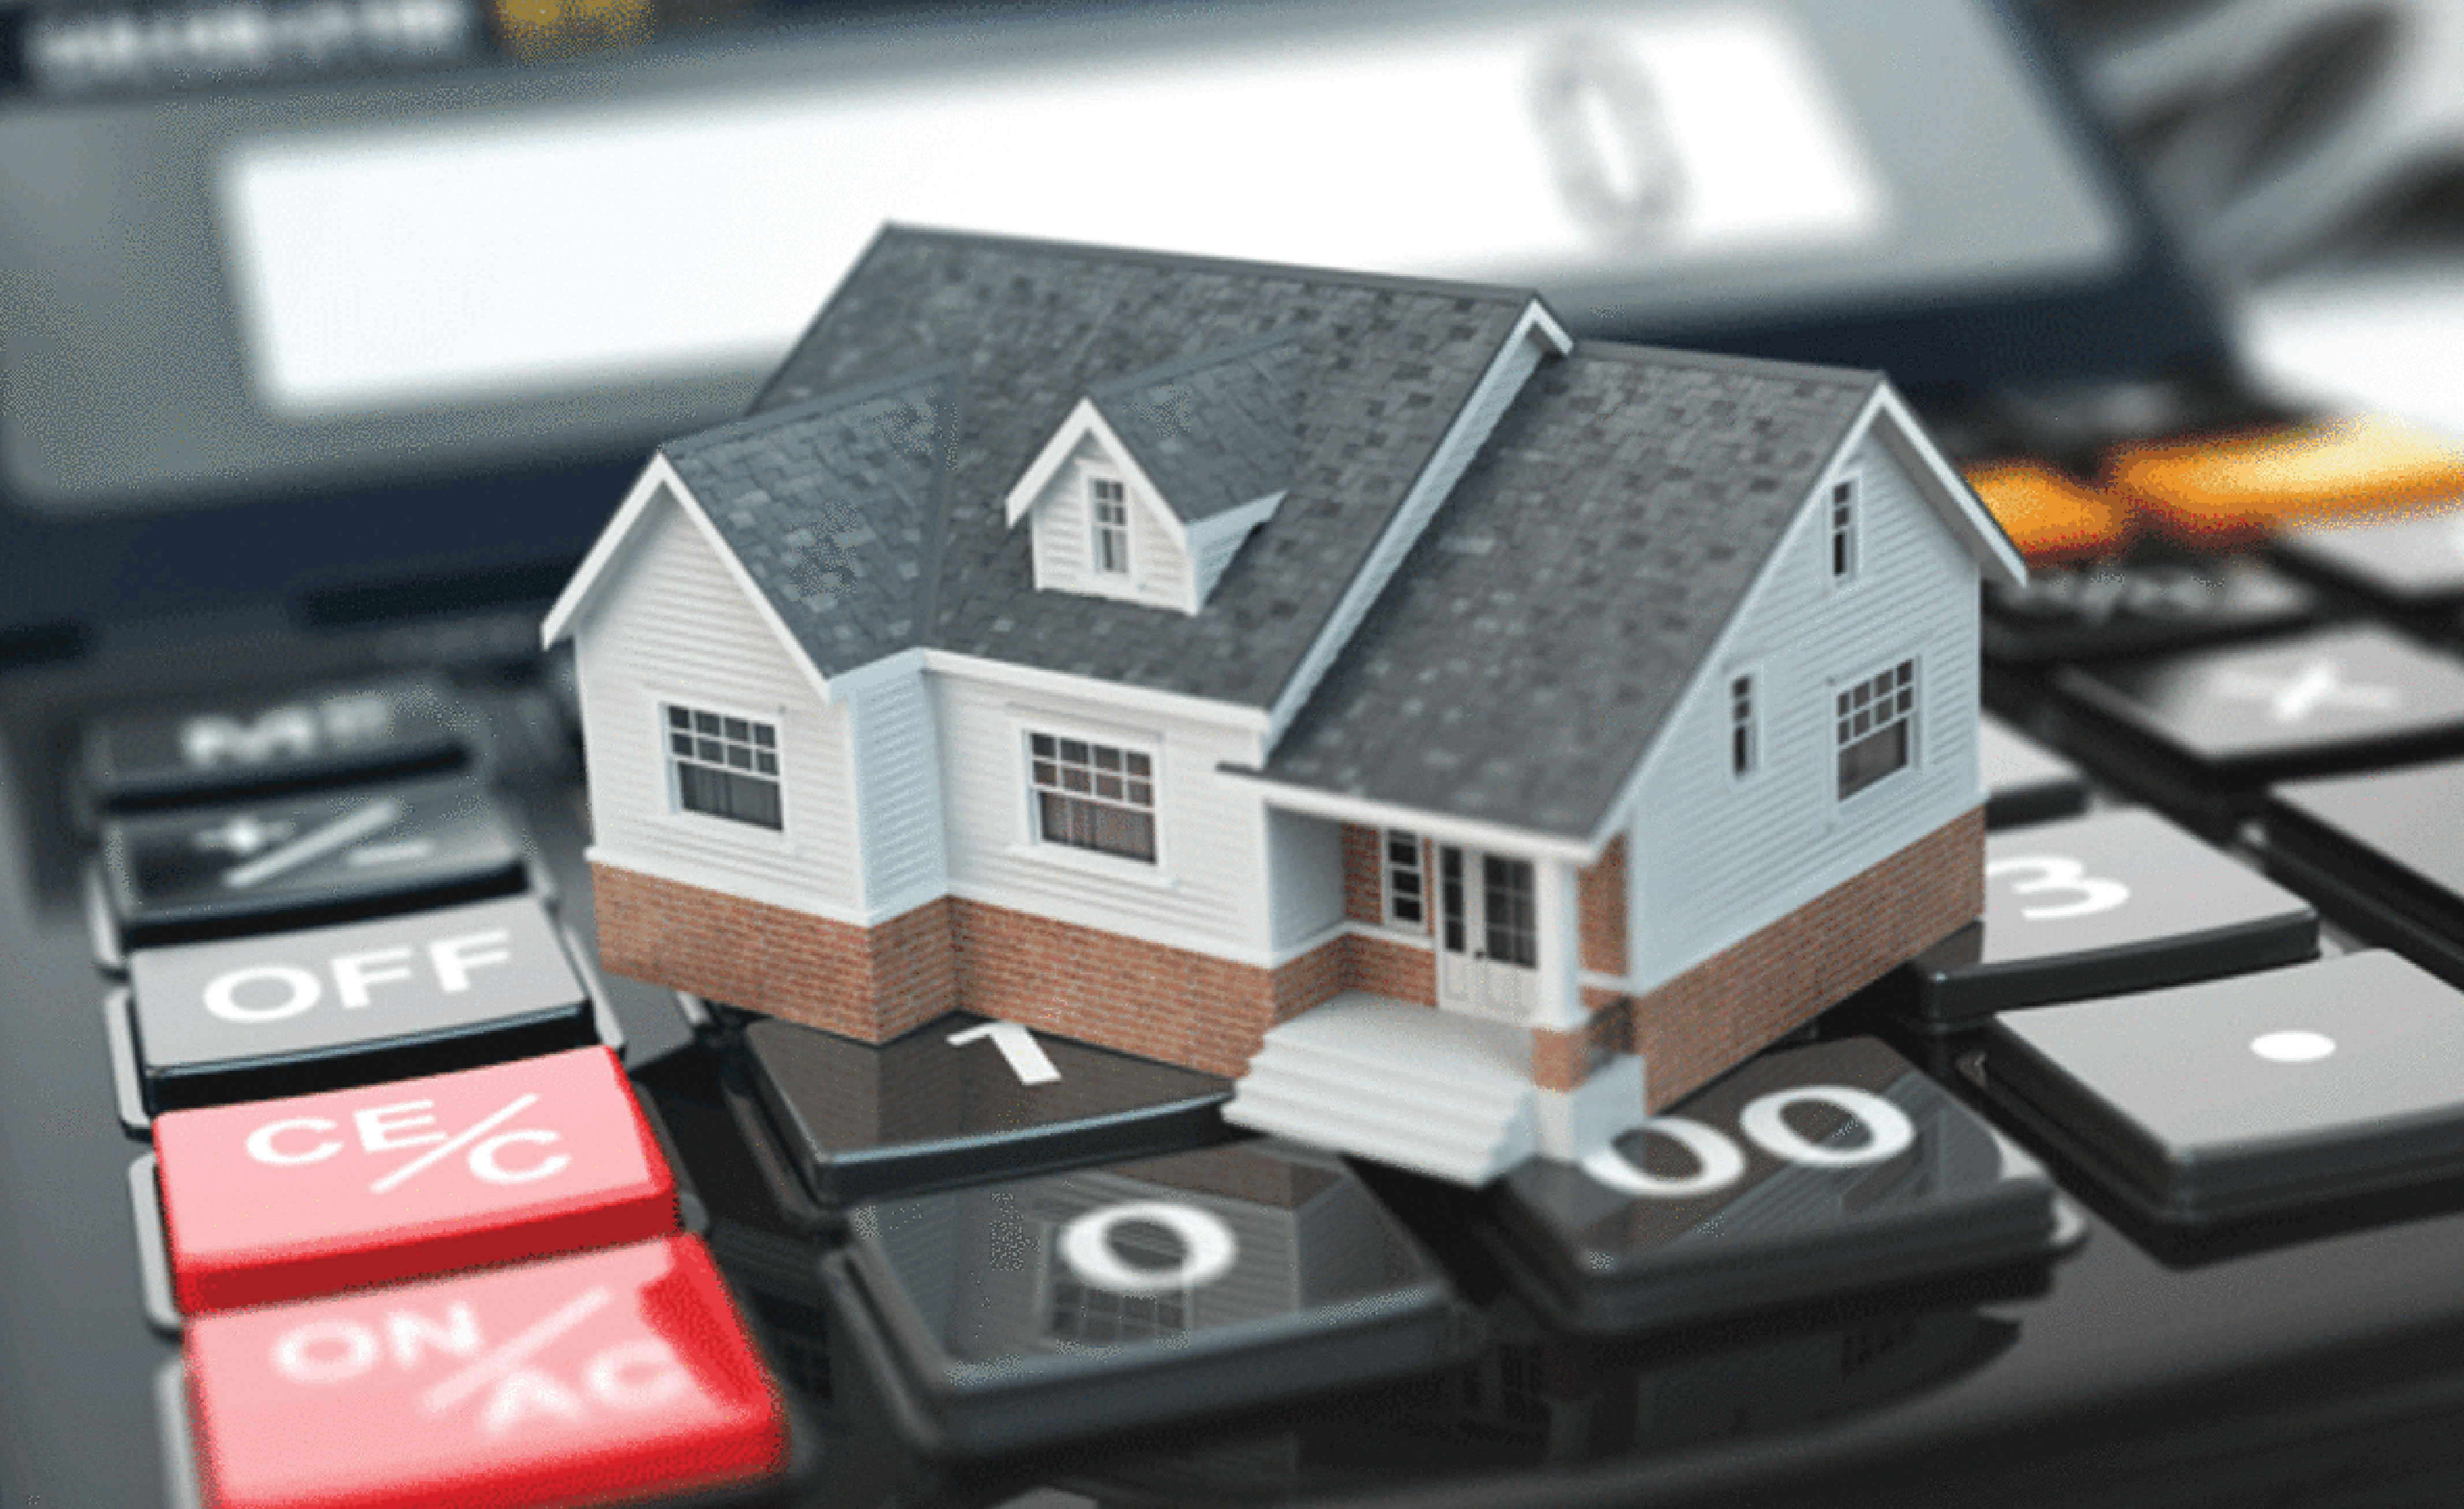 Home Loan Switch-Over